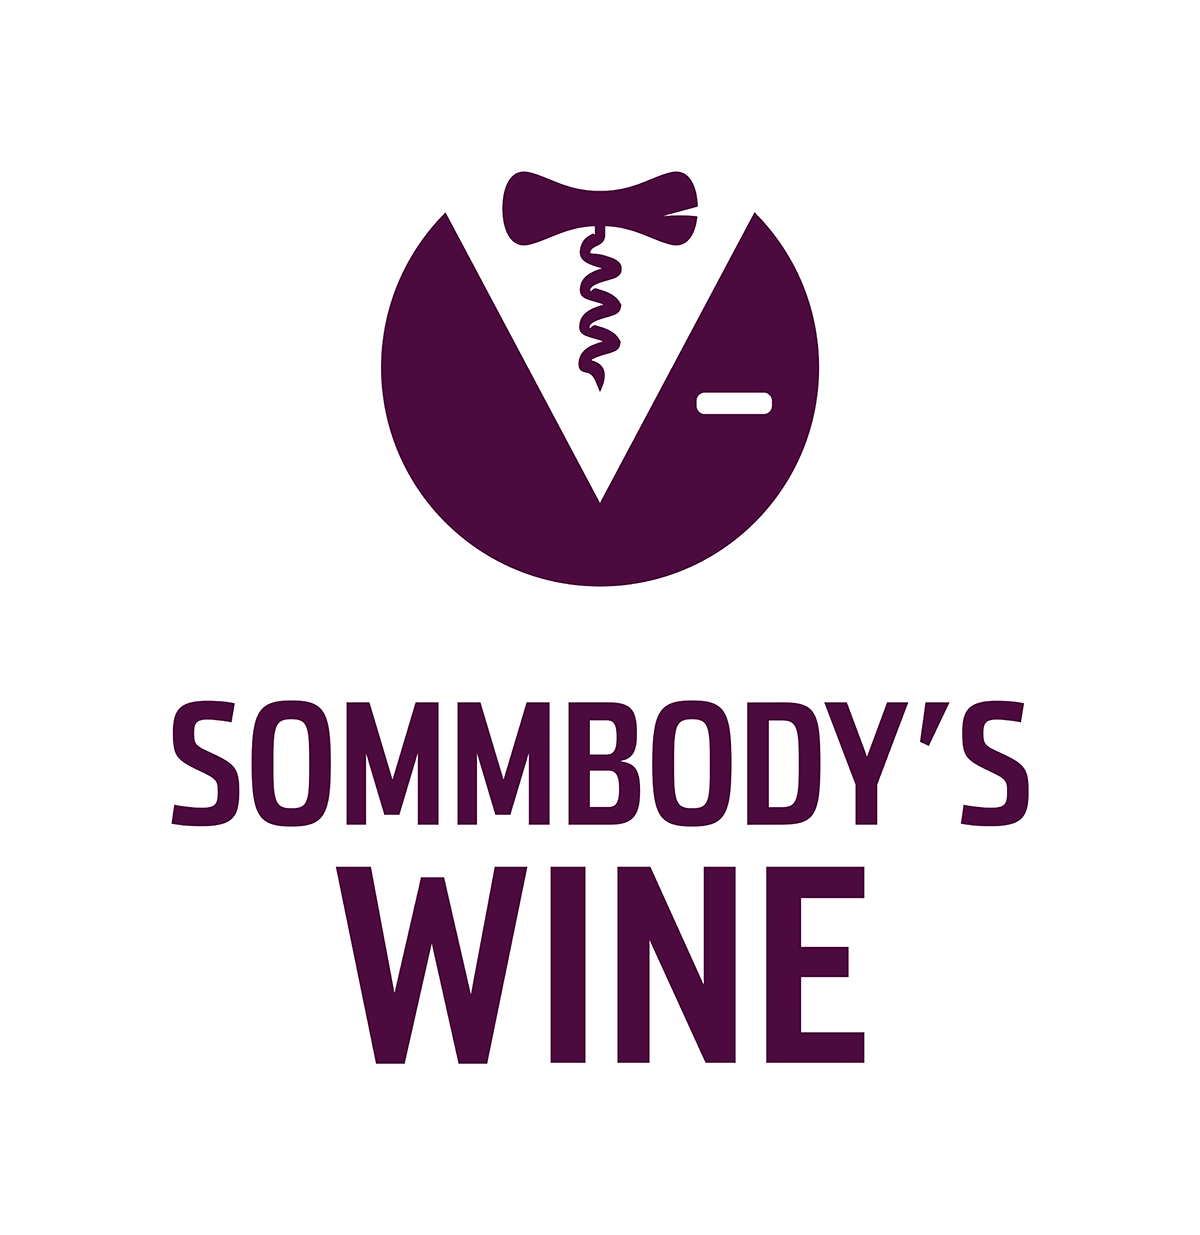 Sommbody's Wine logo should pour whimsical luxury